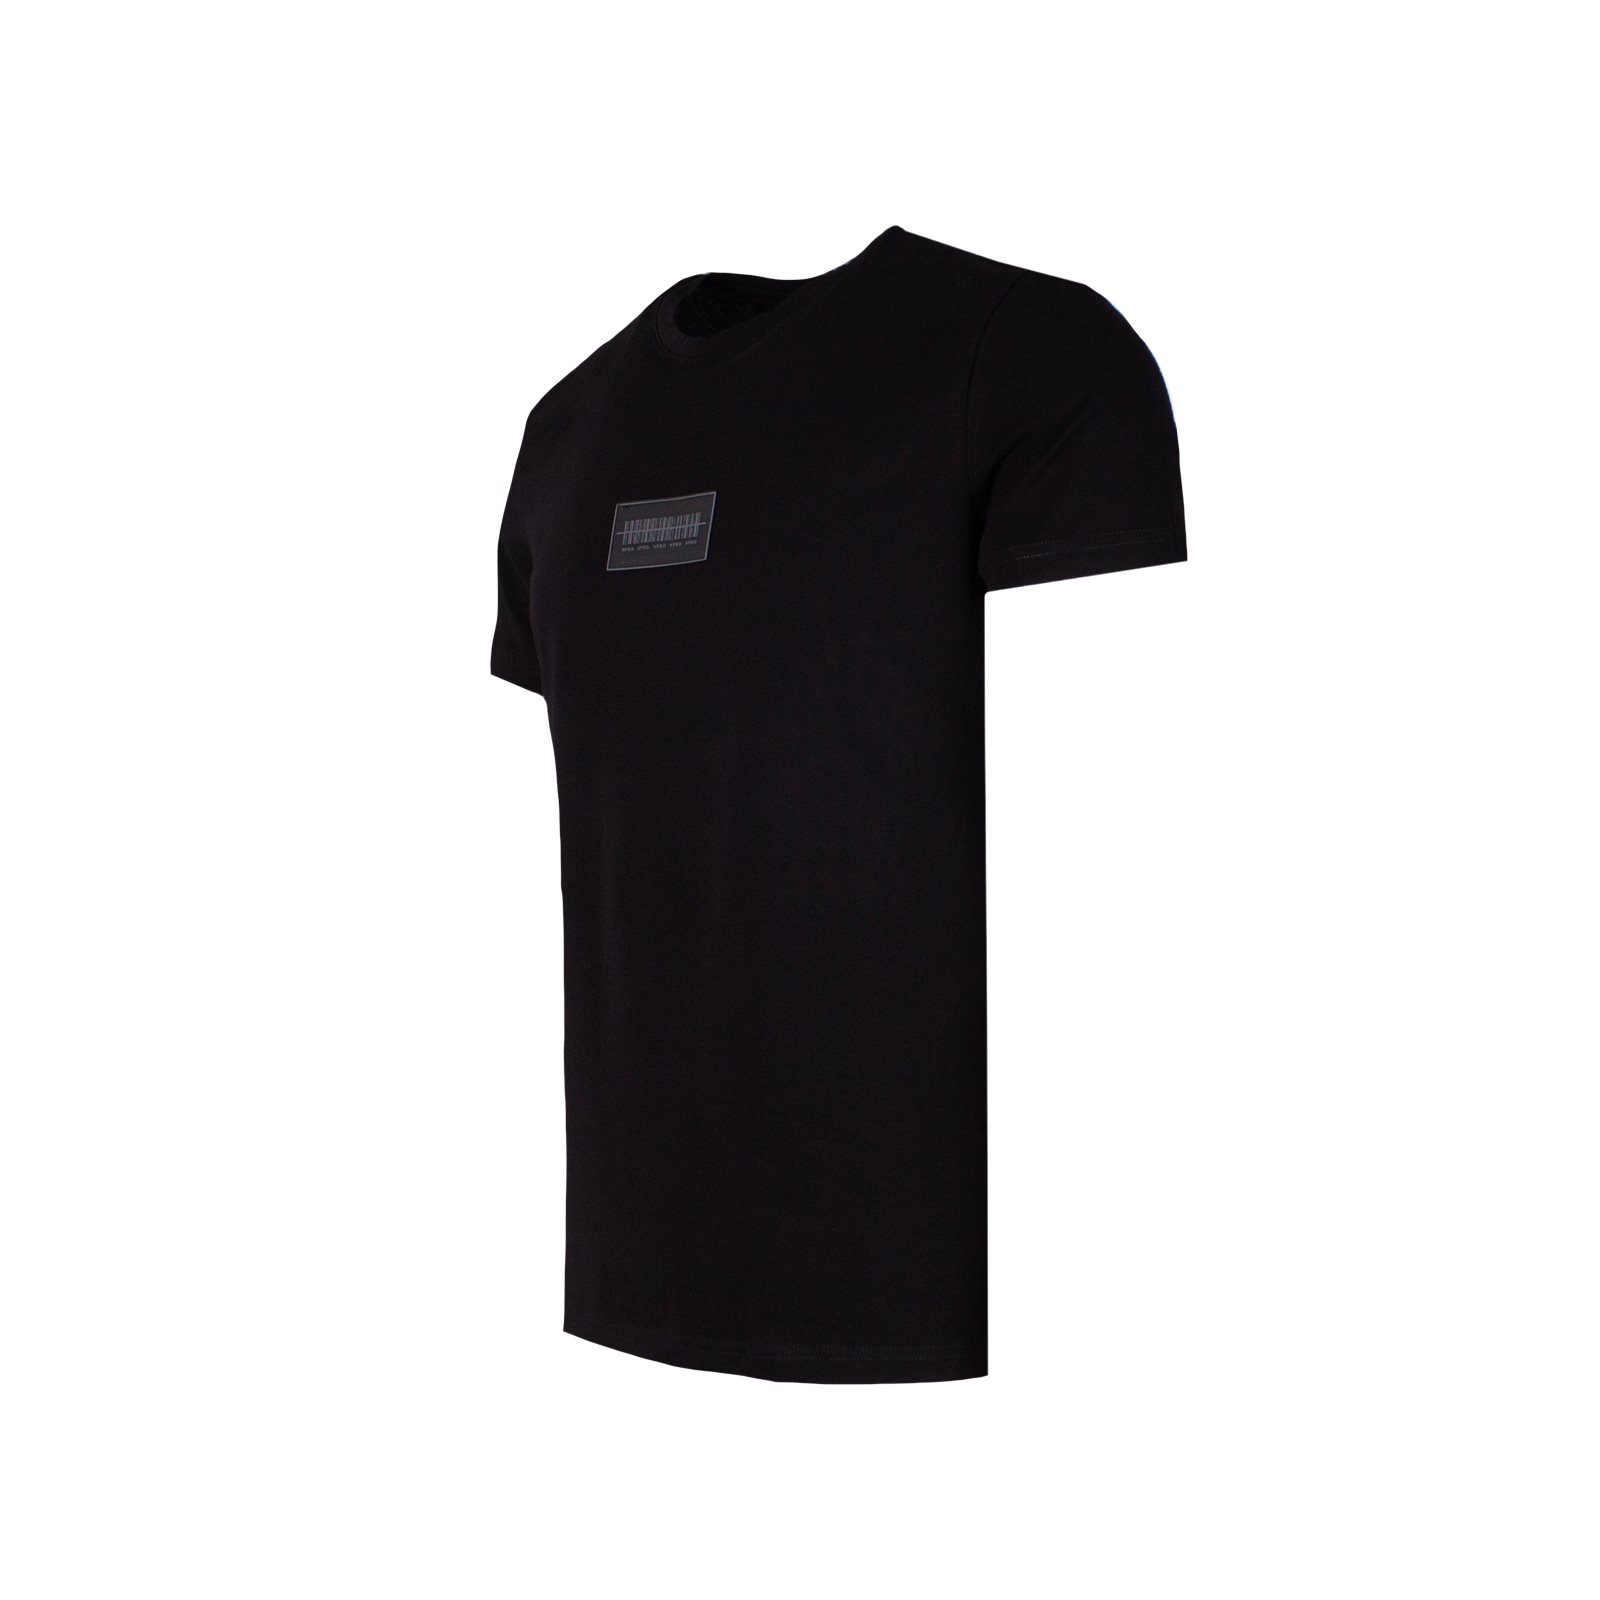 SLIM FIT T-SHIRT 2